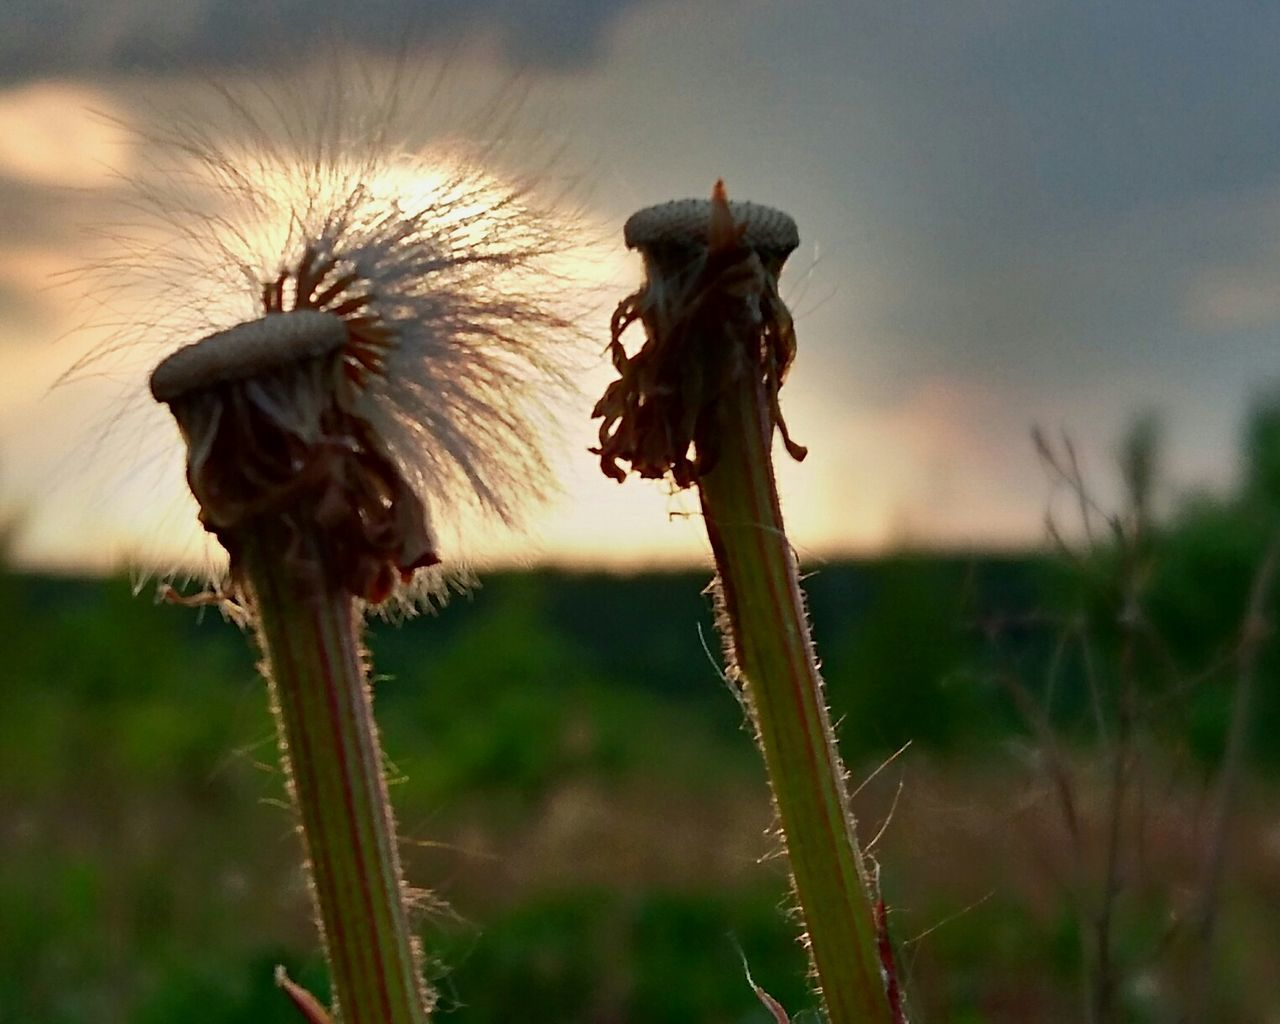 growth, nature, flower, fragility, plant, stem, beauty in nature, focus on foreground, seed, field, close-up, outdoors, flower head, no people, freshness, day, sunset, sky, thistle